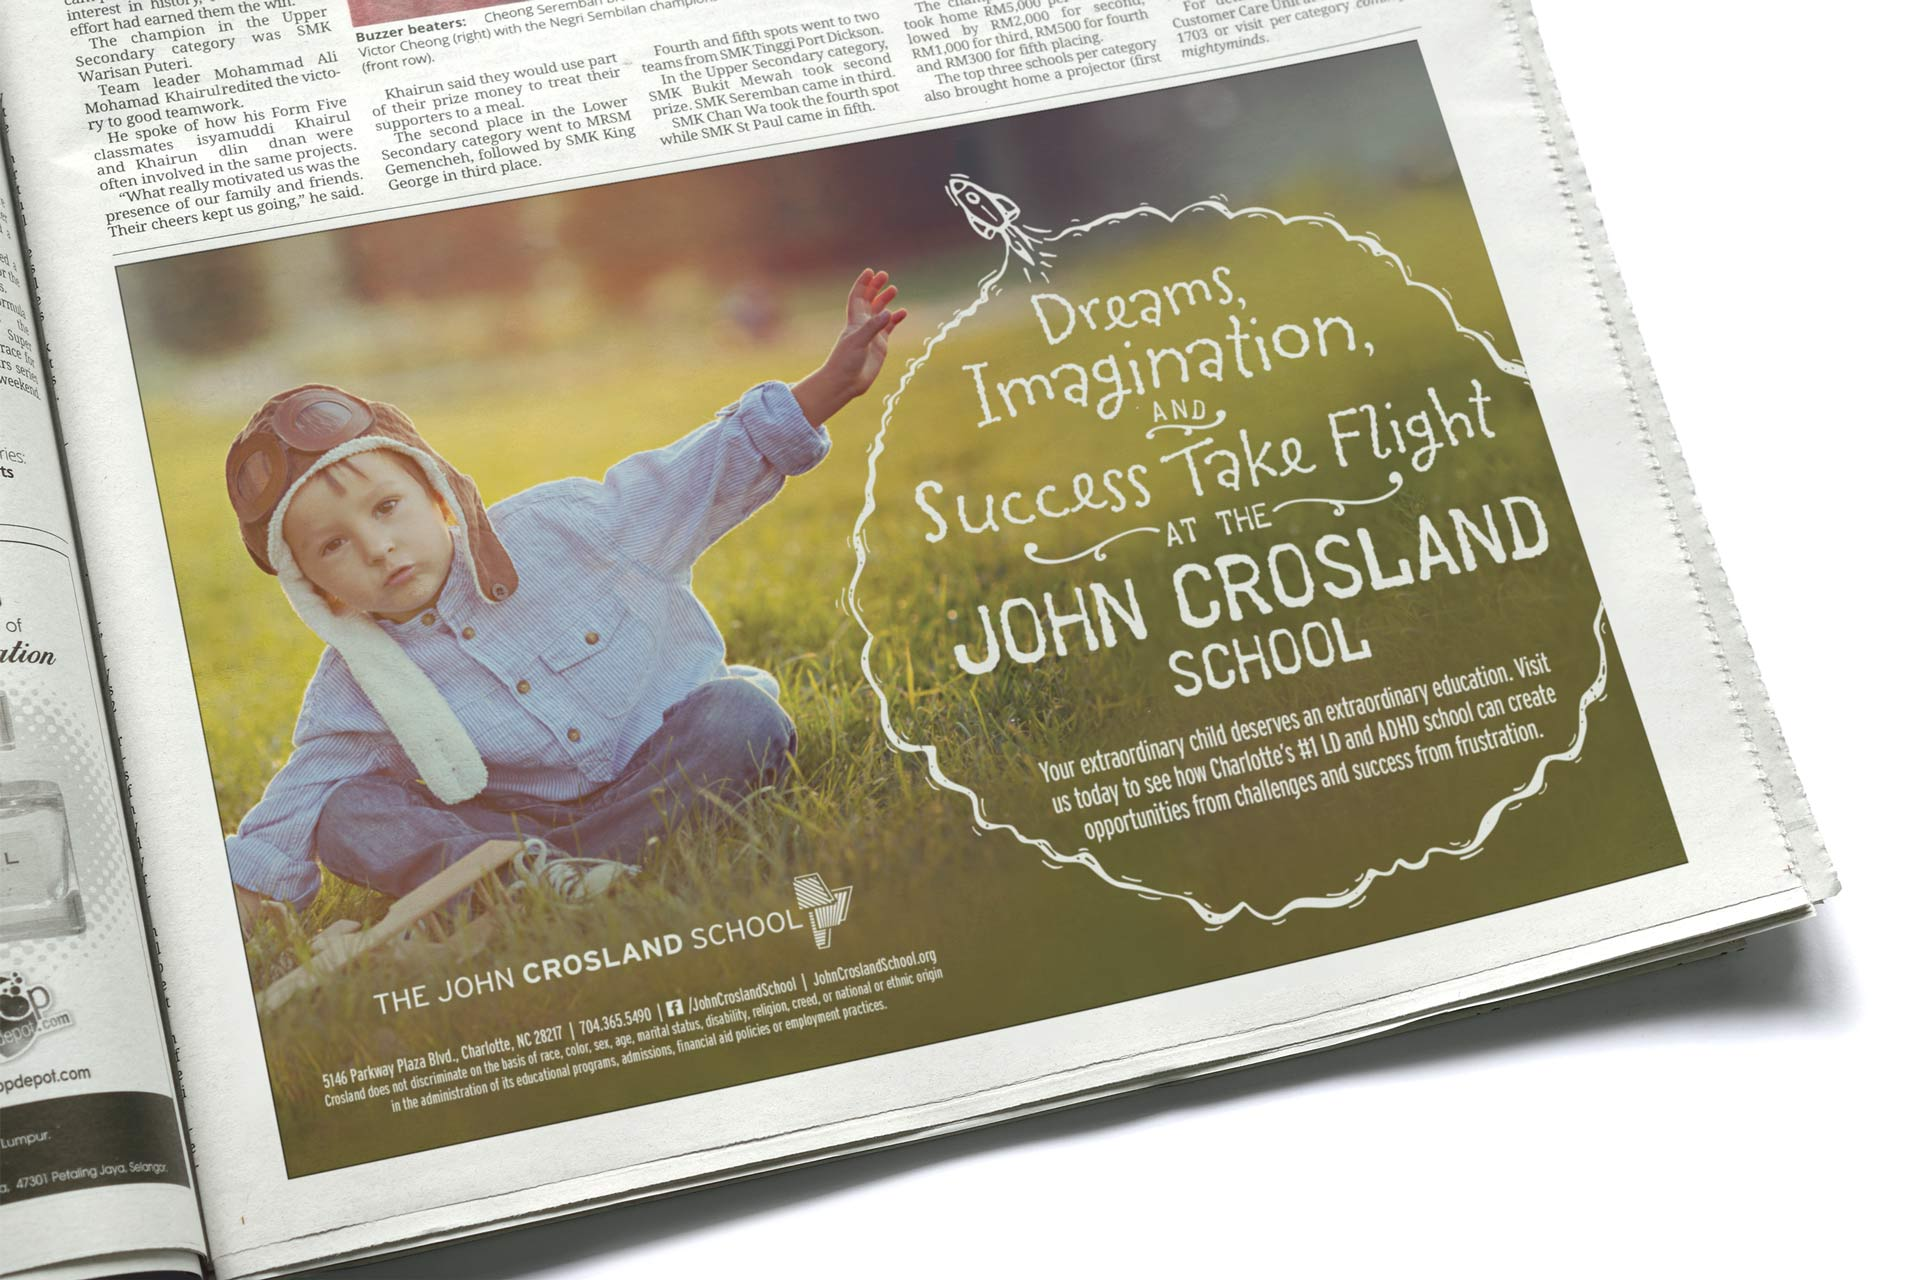 The John Crosland School Newspaper Ad